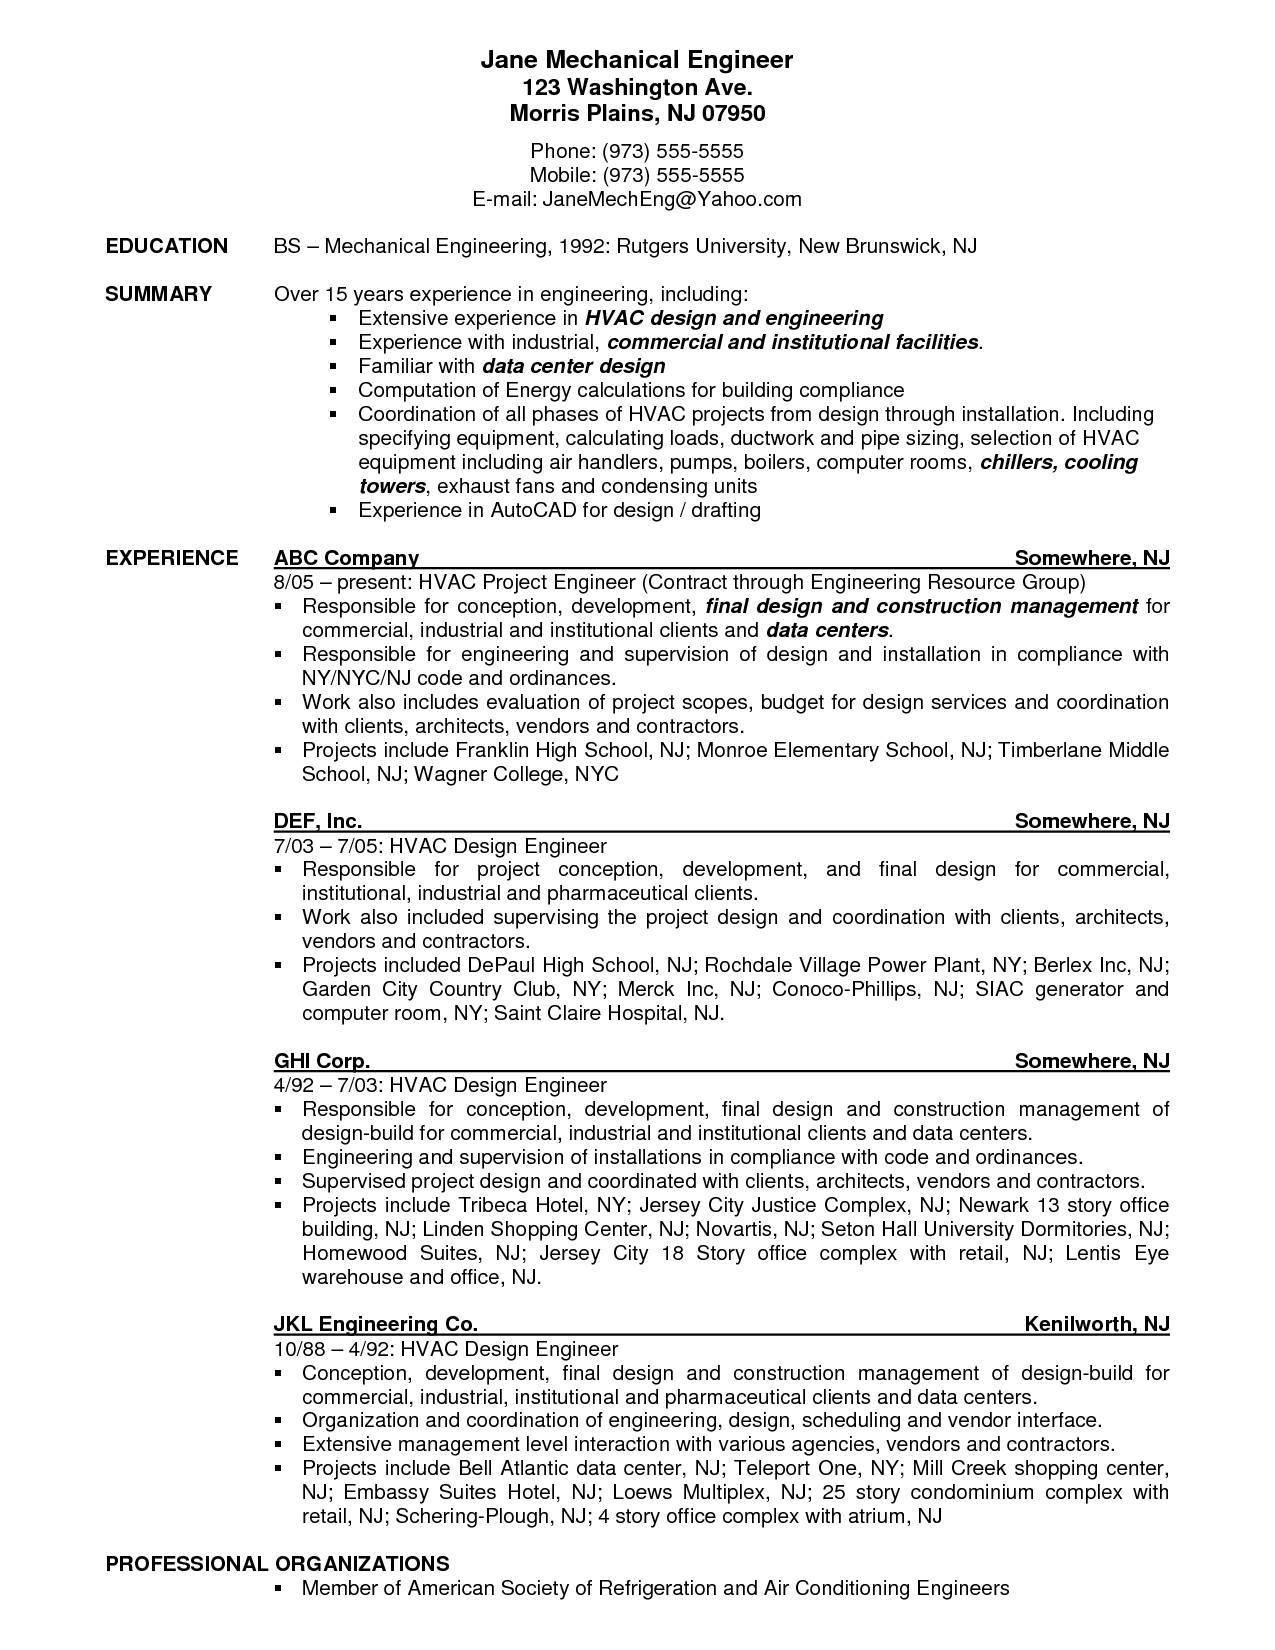 Resume Templates For Test Engineers